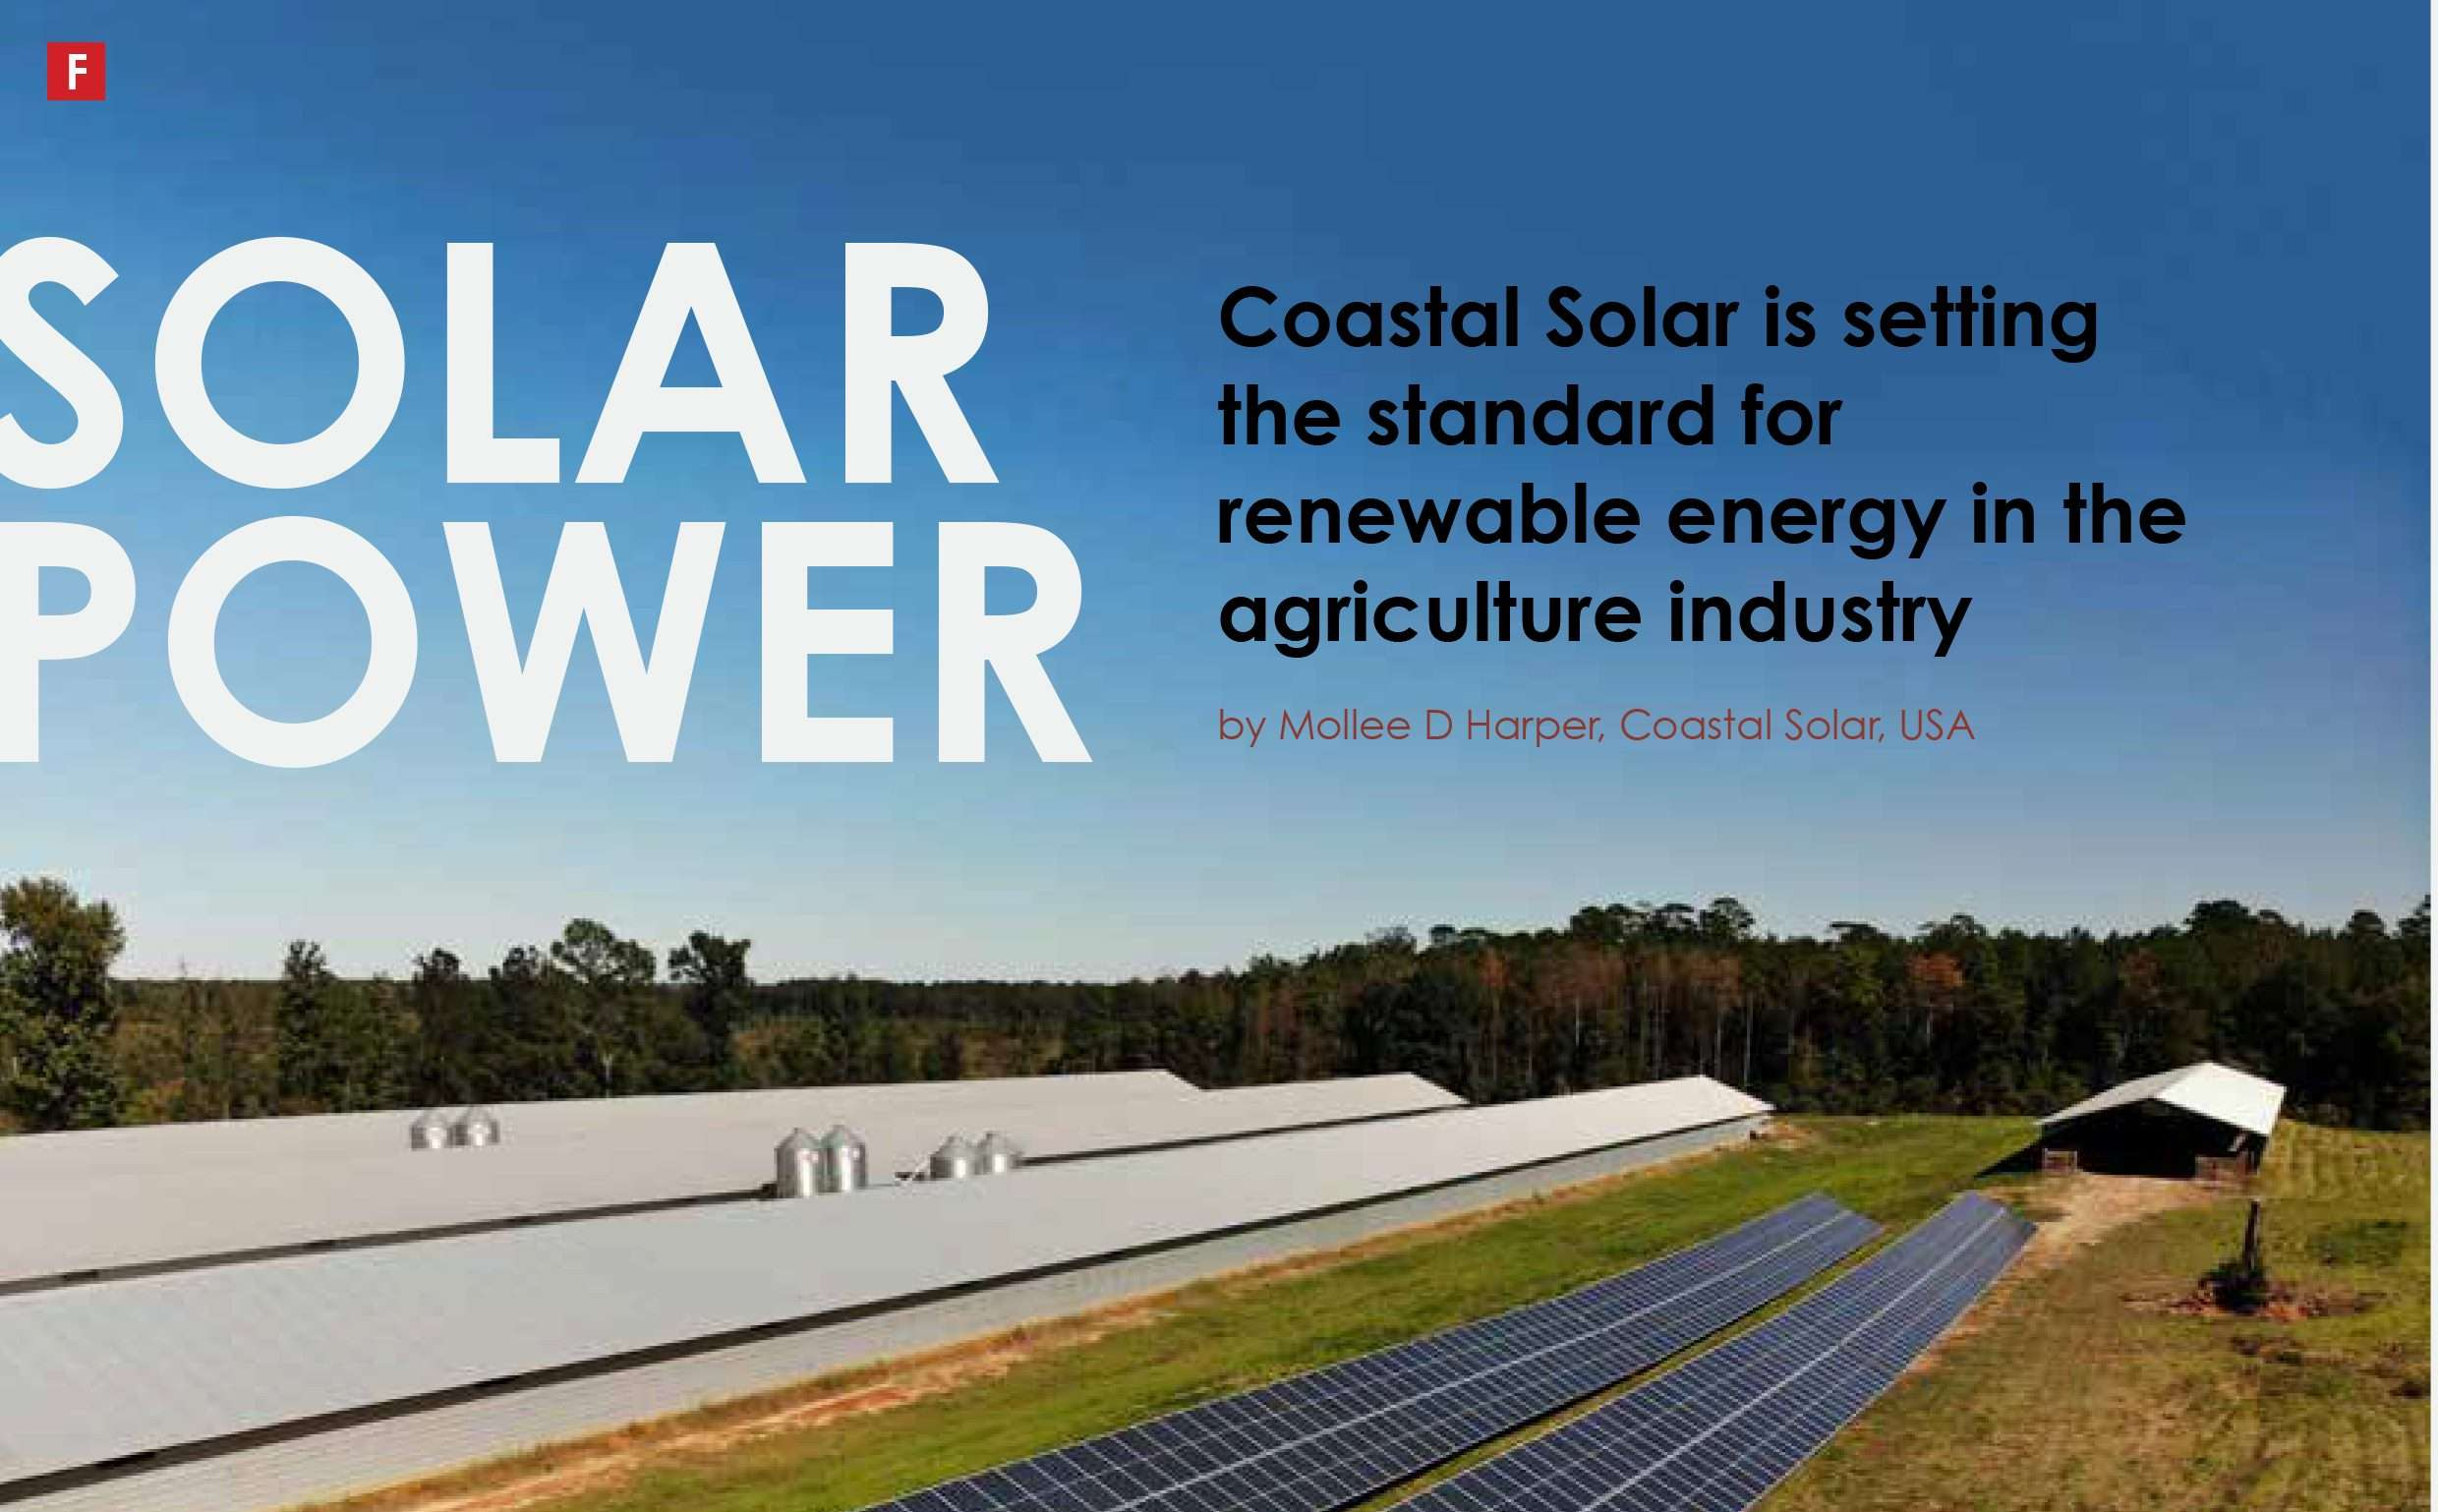 cover of Coastal Solar feature in British agricultural magazine